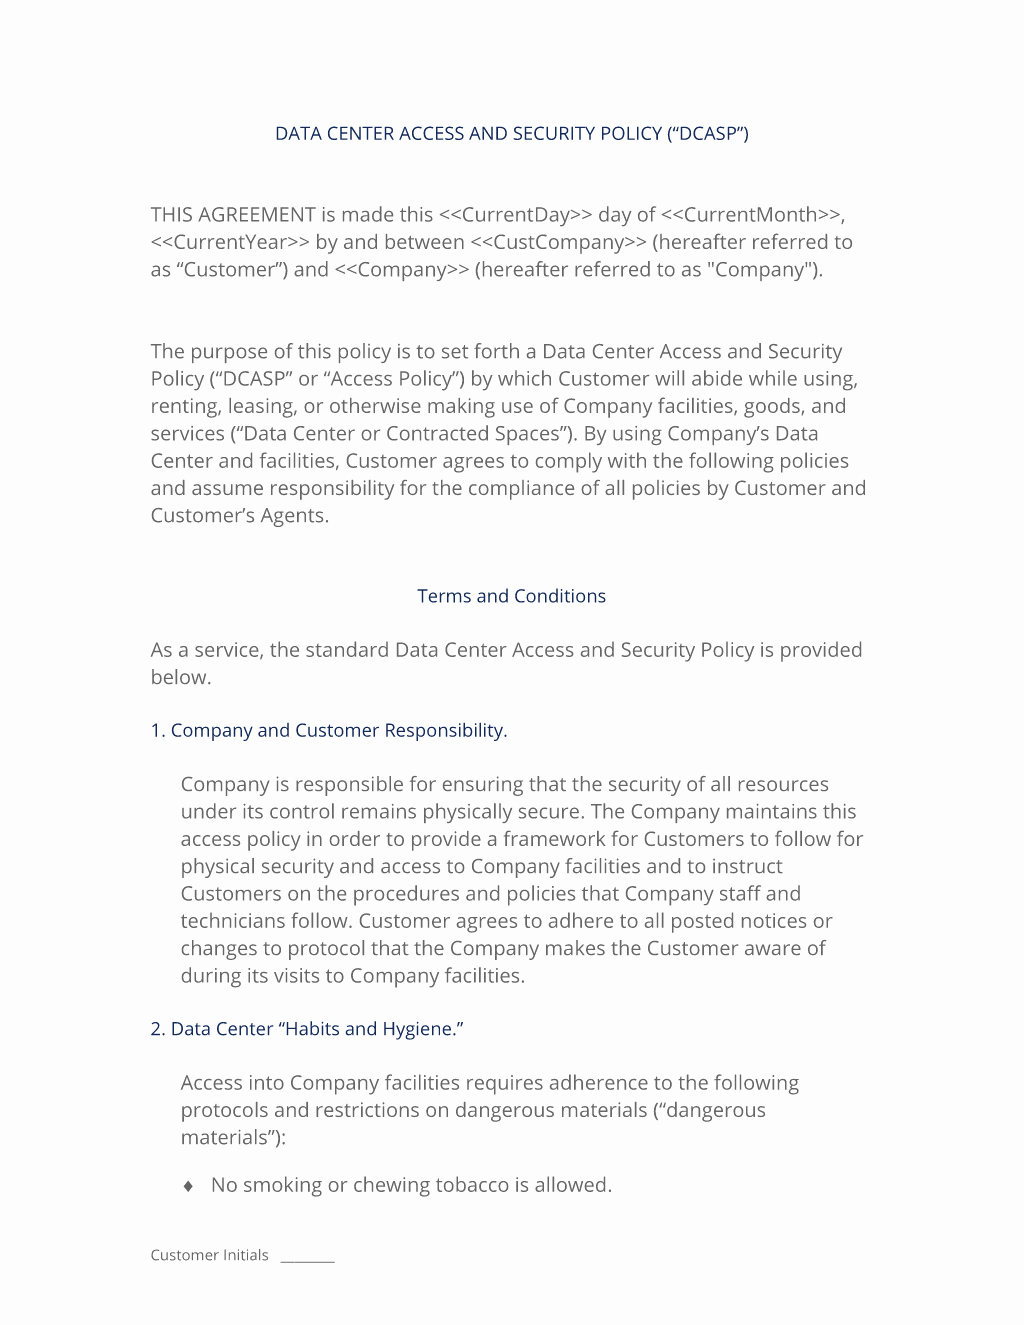 Data Security Agreement Template Inspirational Data Center Access and Security Policy Template 3 Easy Steps